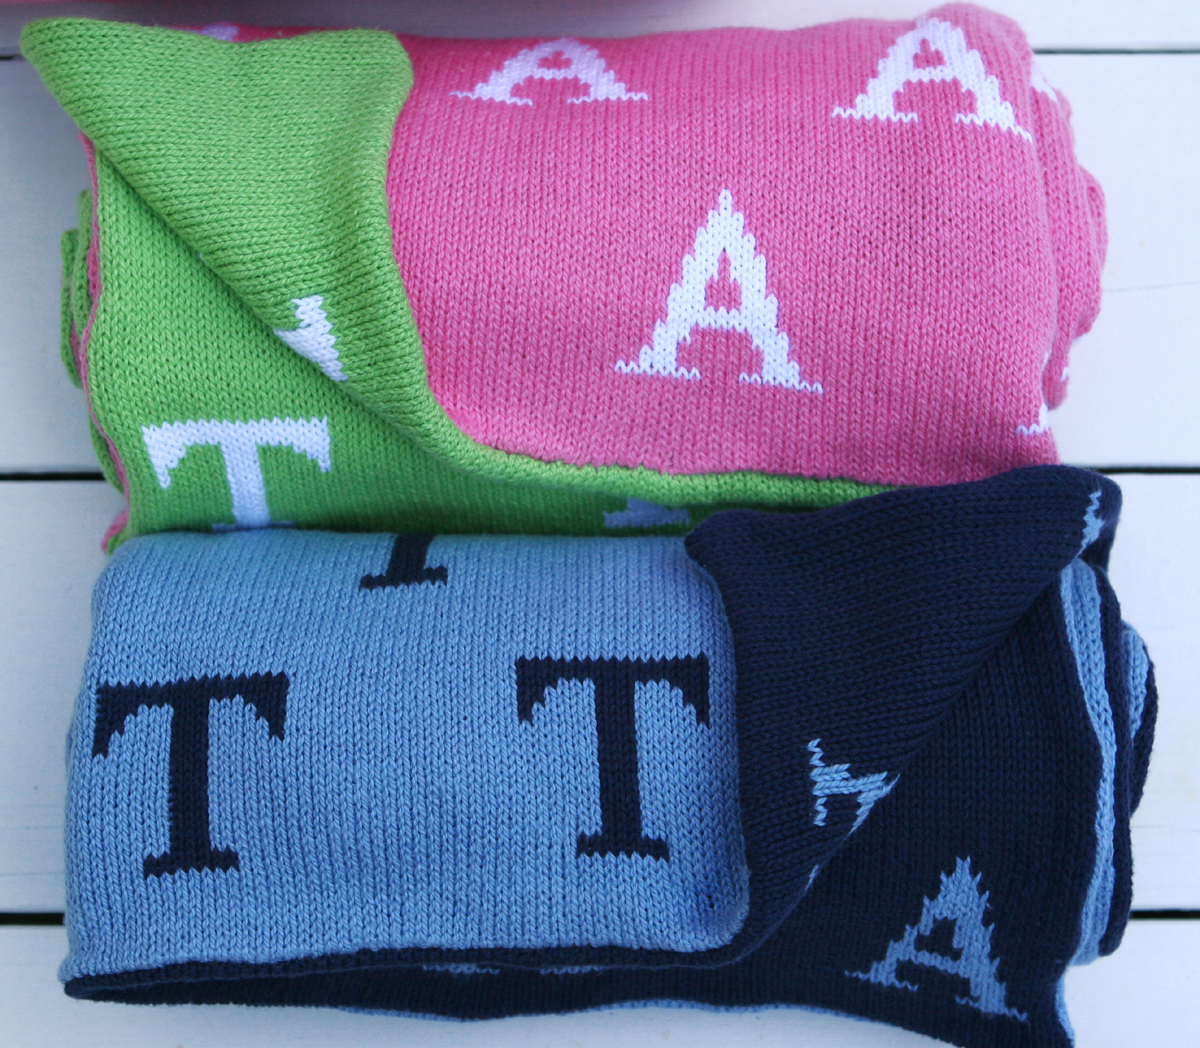 Knit Baby Blanket Initials